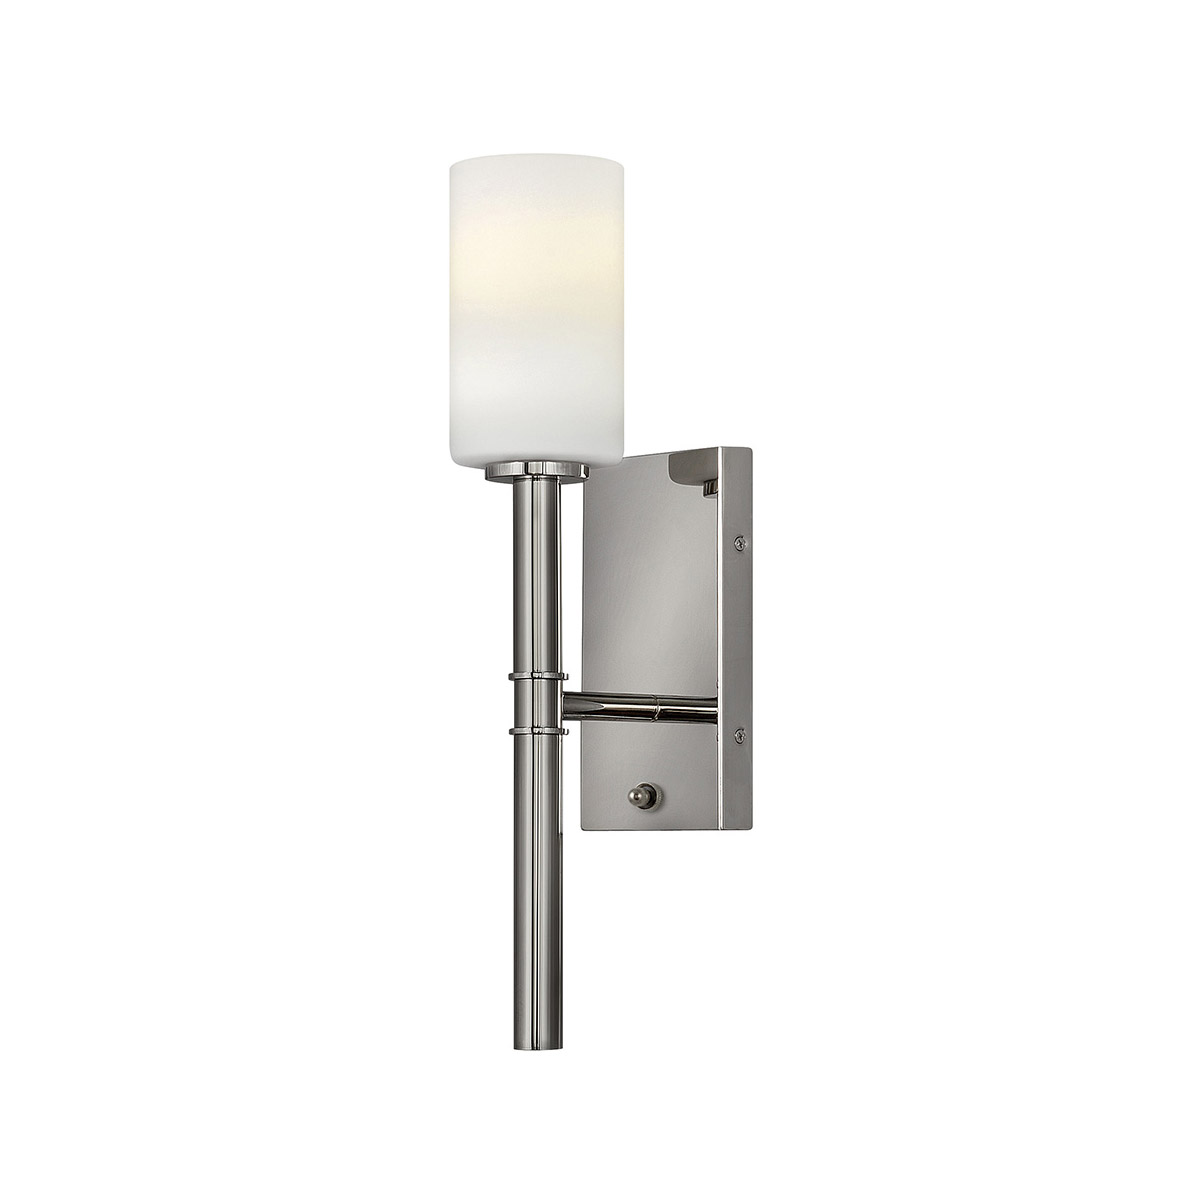 22.75 One Light Outdoor Small Wall Hinkley Lighting-10231TK-Foundry